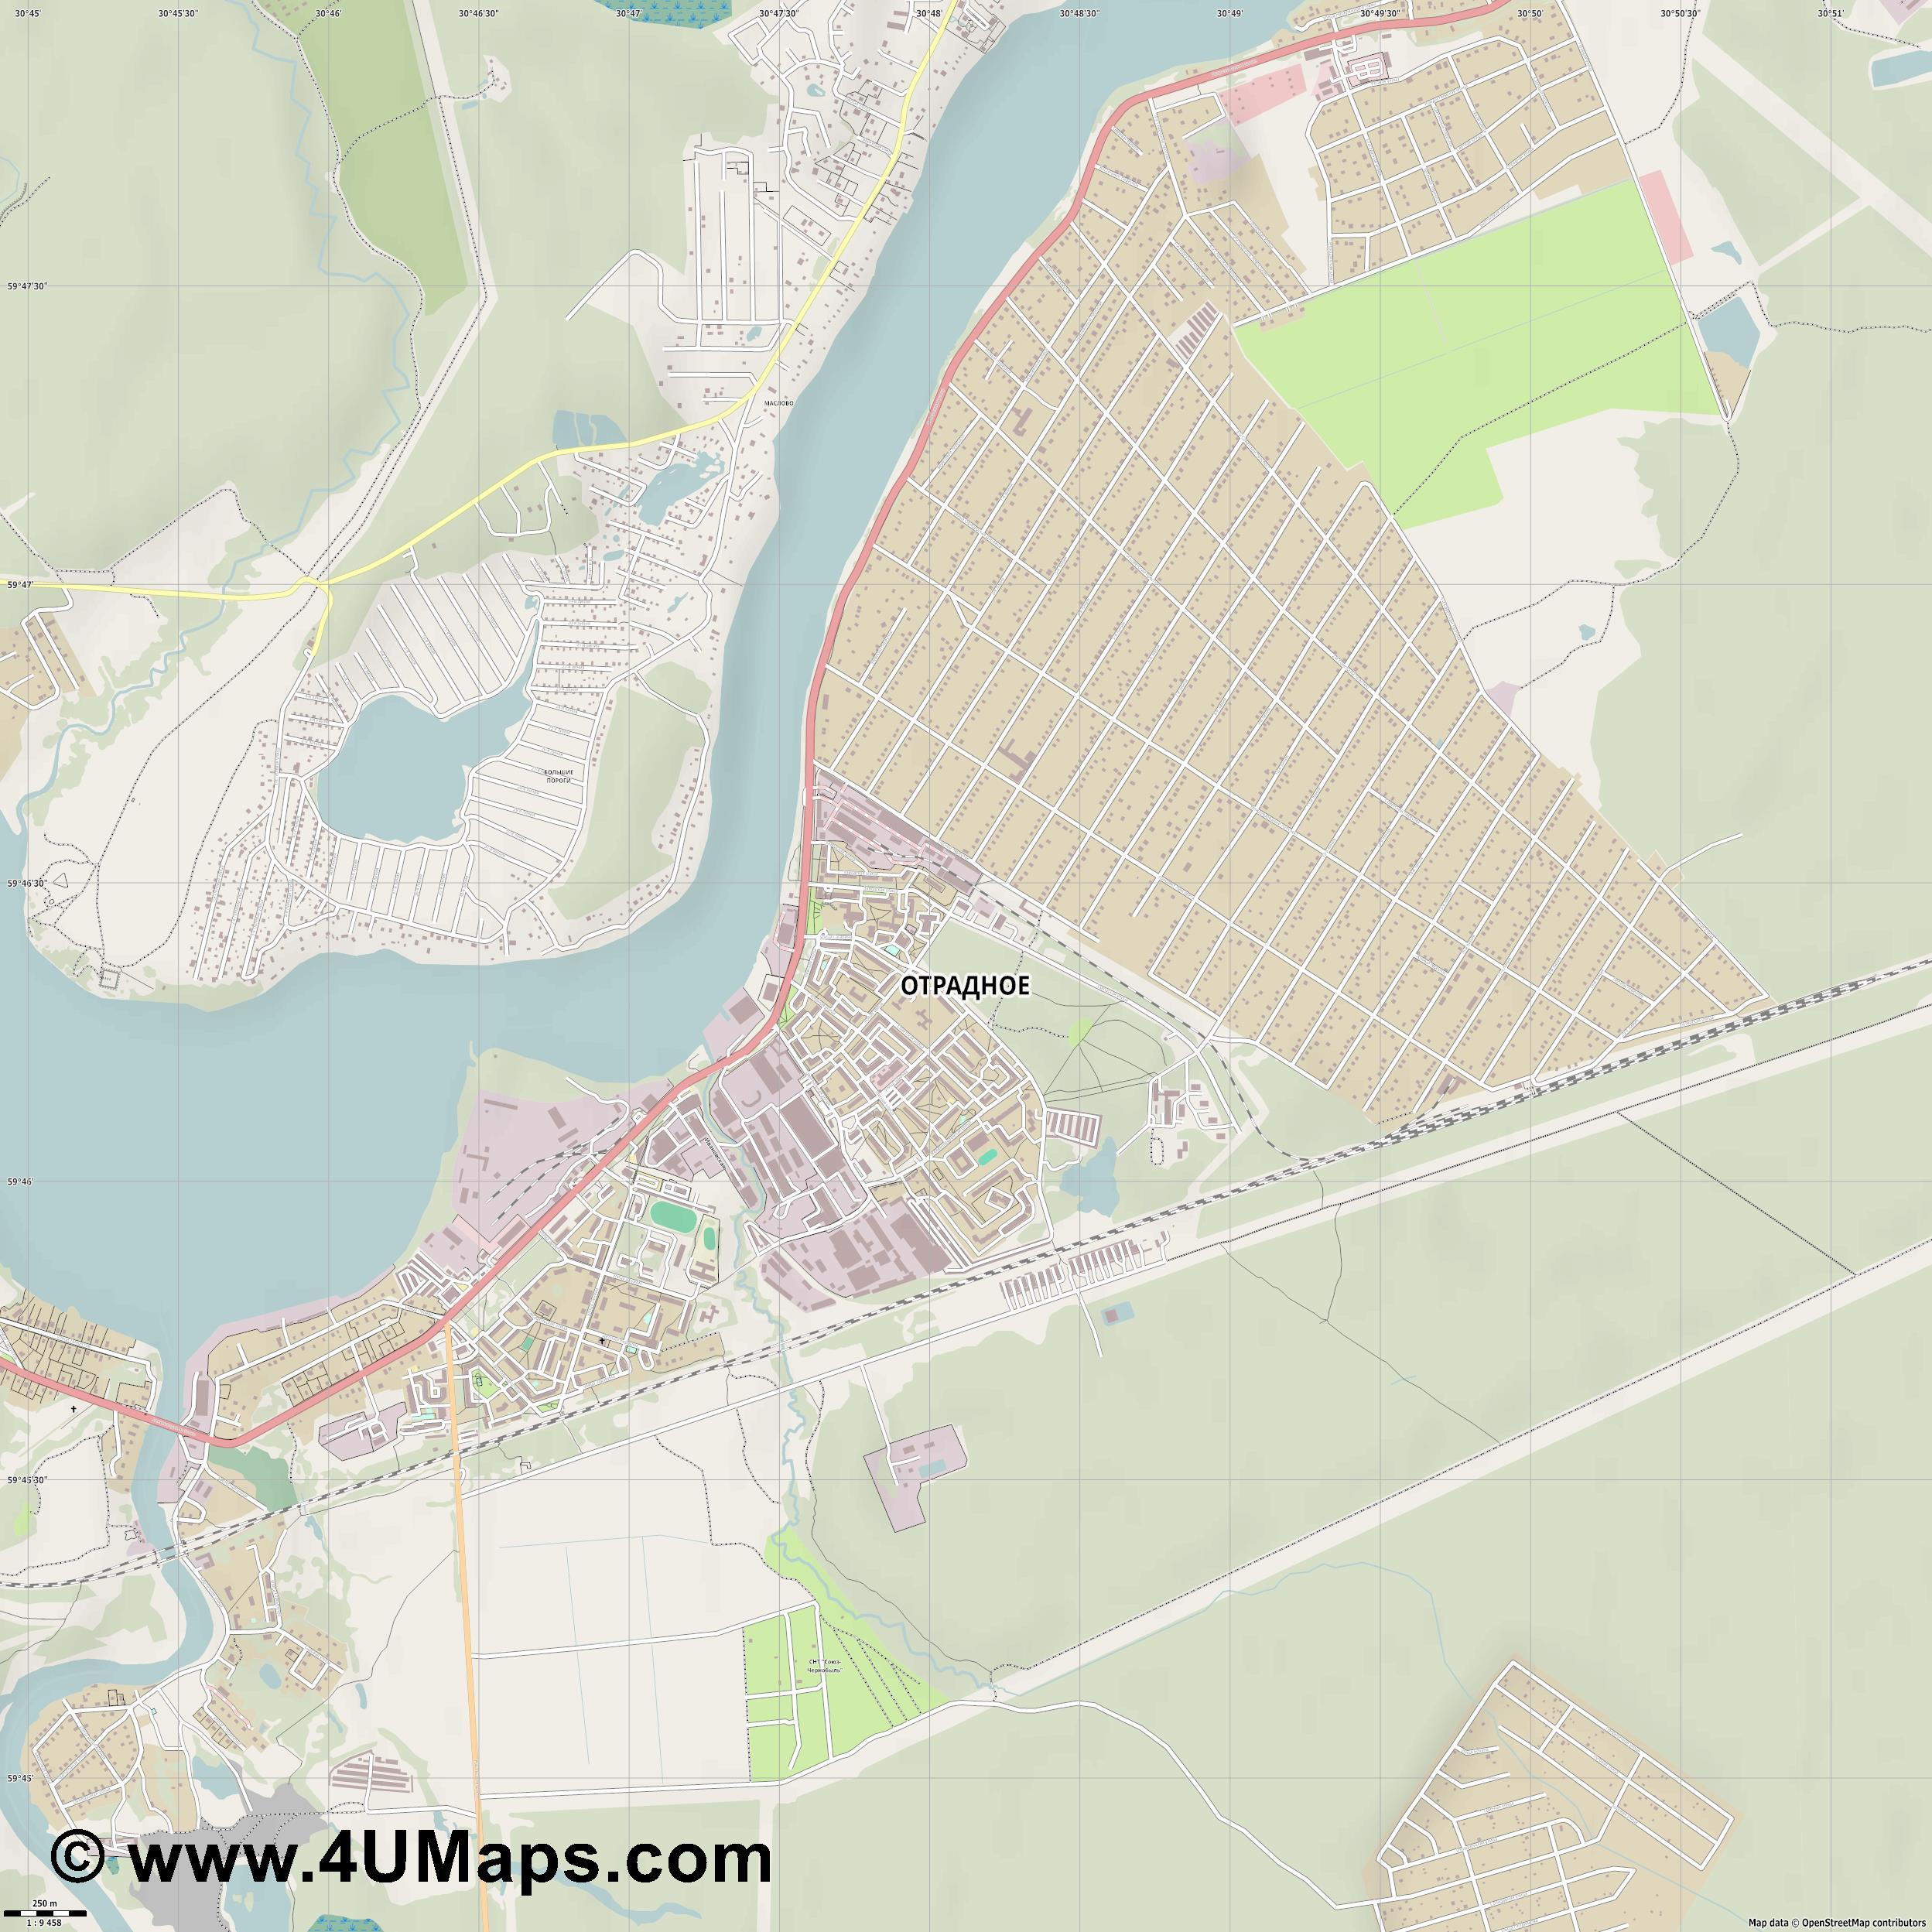 Отрадное Otradnoye Otradnoje  jpg ultra high detail preview vector city map